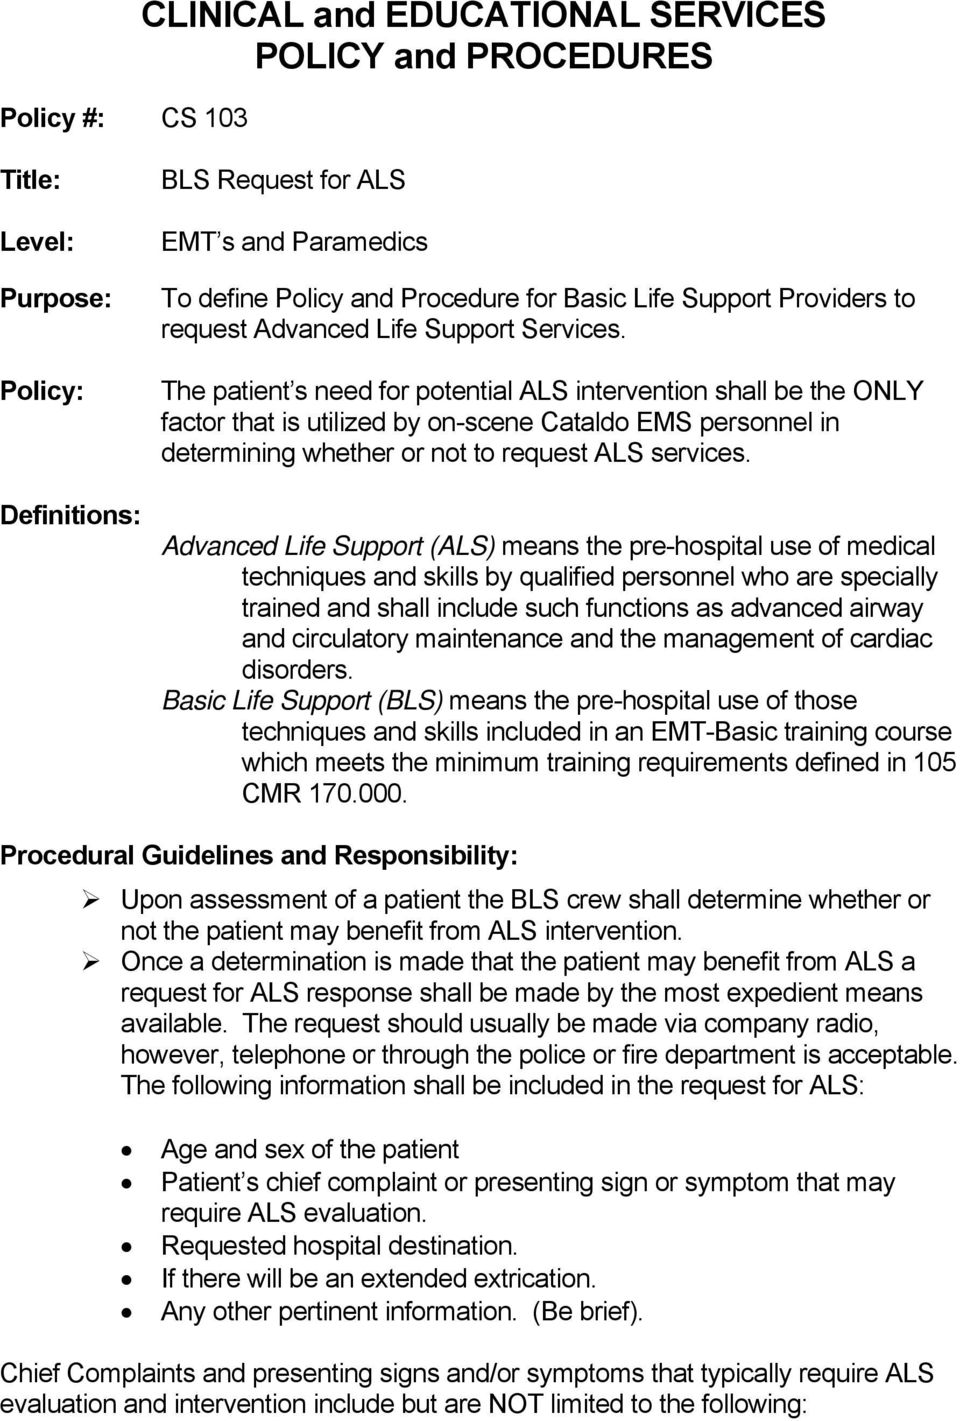 The patient s need for potential ALS intervention shall be the ONLY factor that is utilized by on-scene Cataldo EMS personnel in determining whether or not to request ALS services.